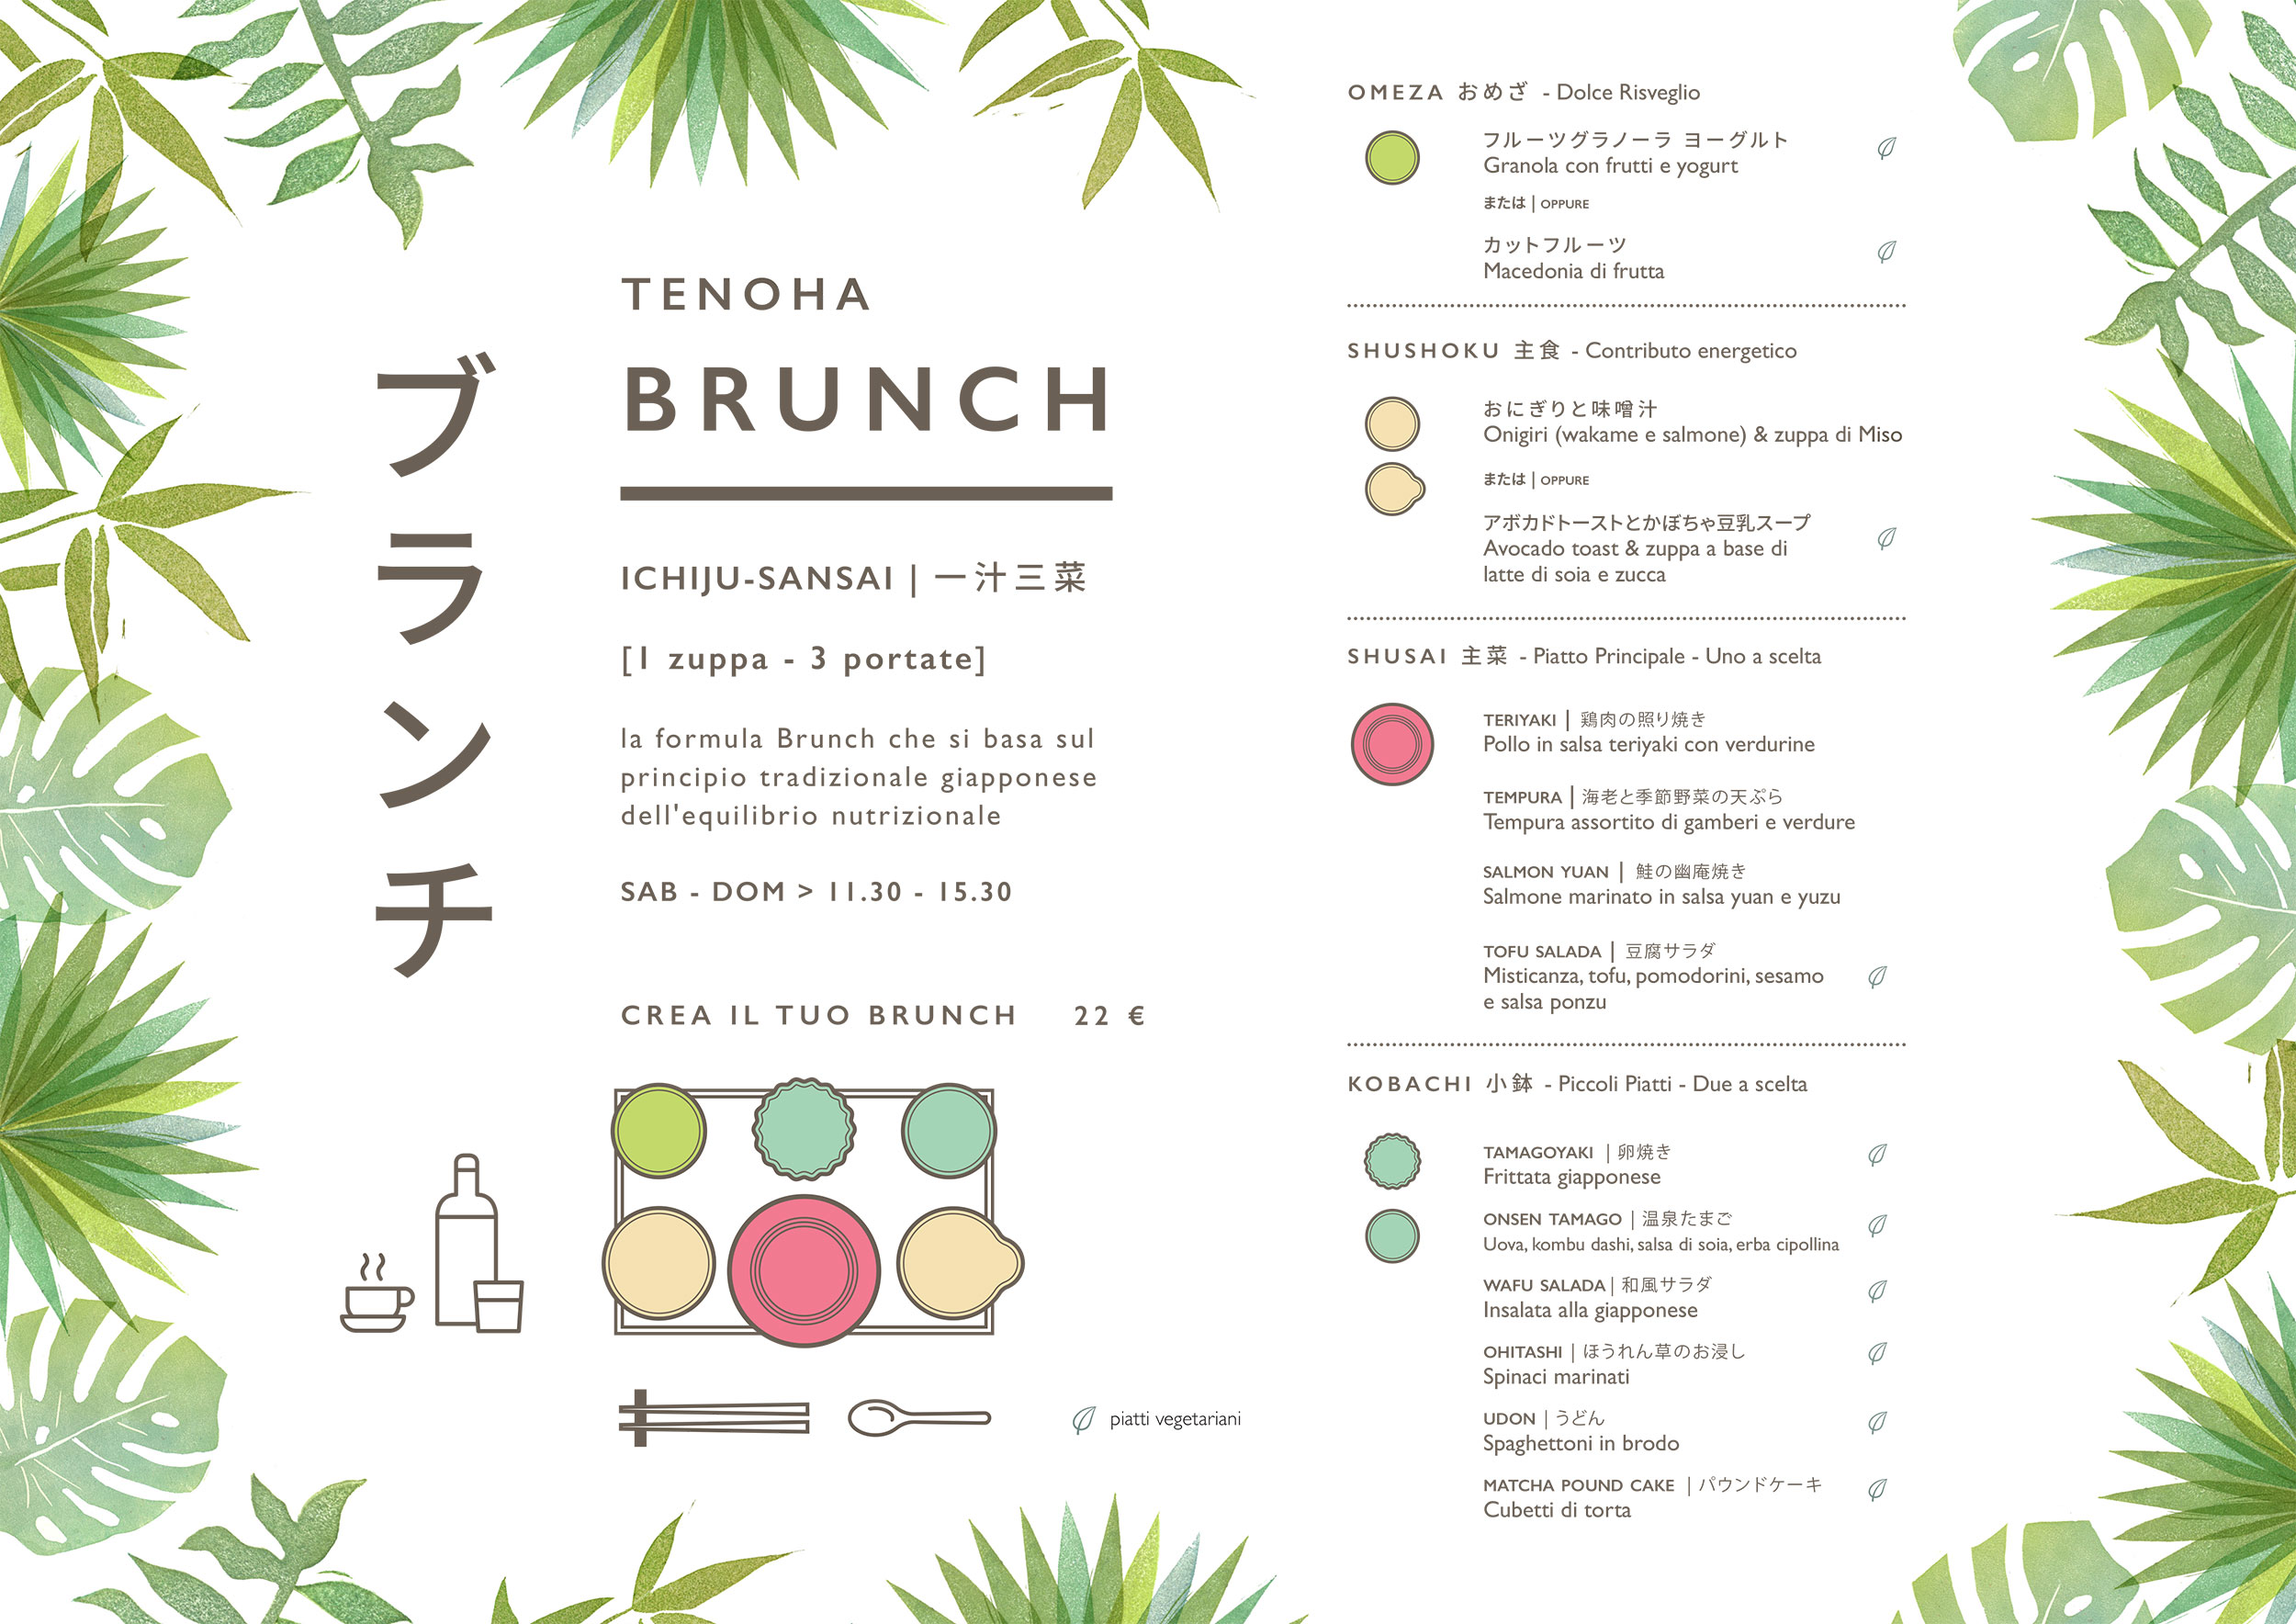 TENOHA Brunch